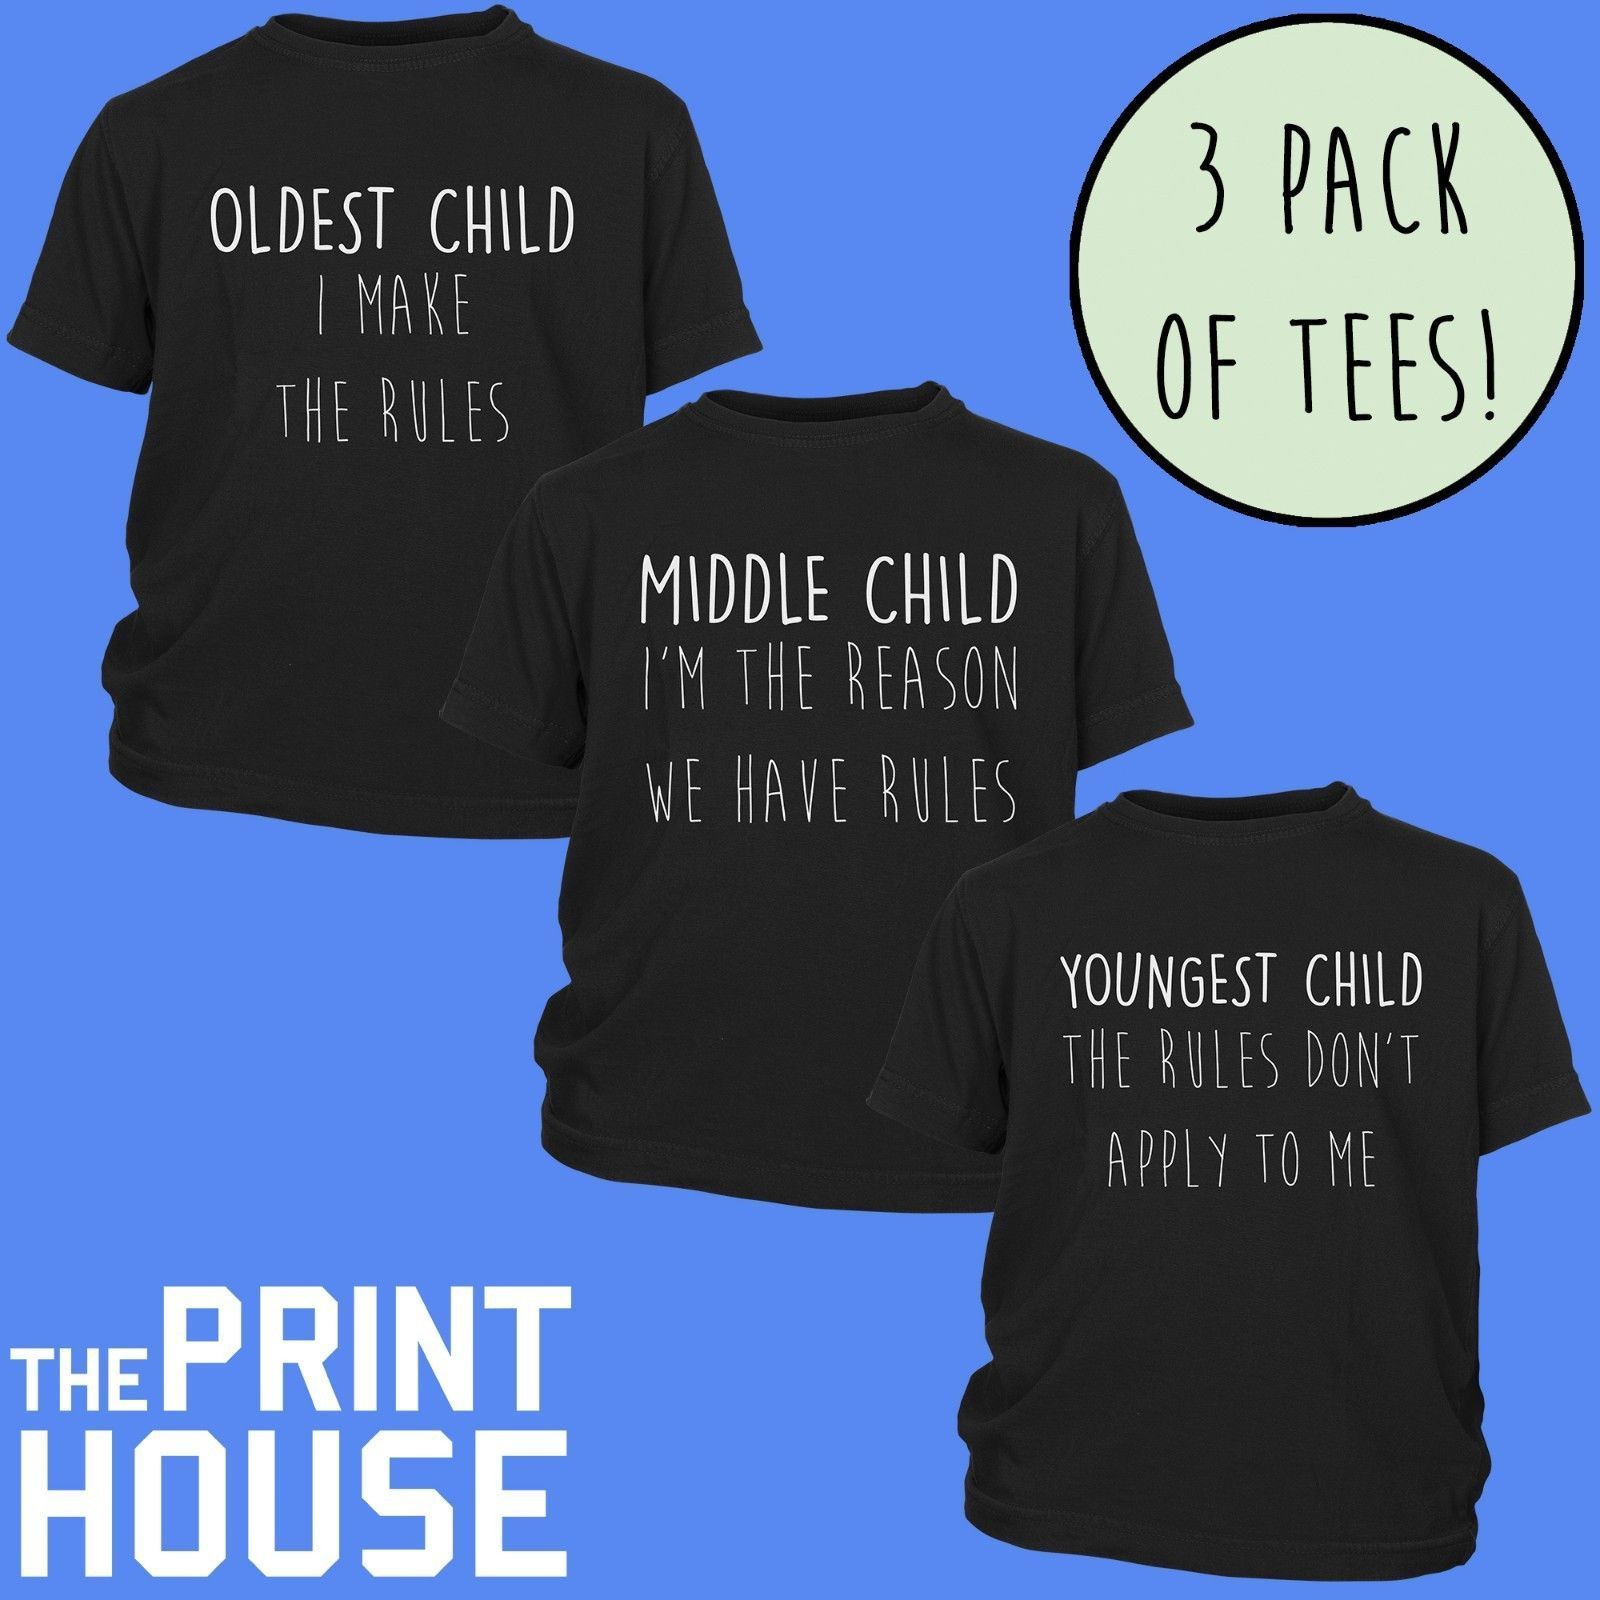 490bf3c1f Details about New Kids Family Rules T Shirts 3 Pack Youngest Middle Oldest  Child Childrens Top